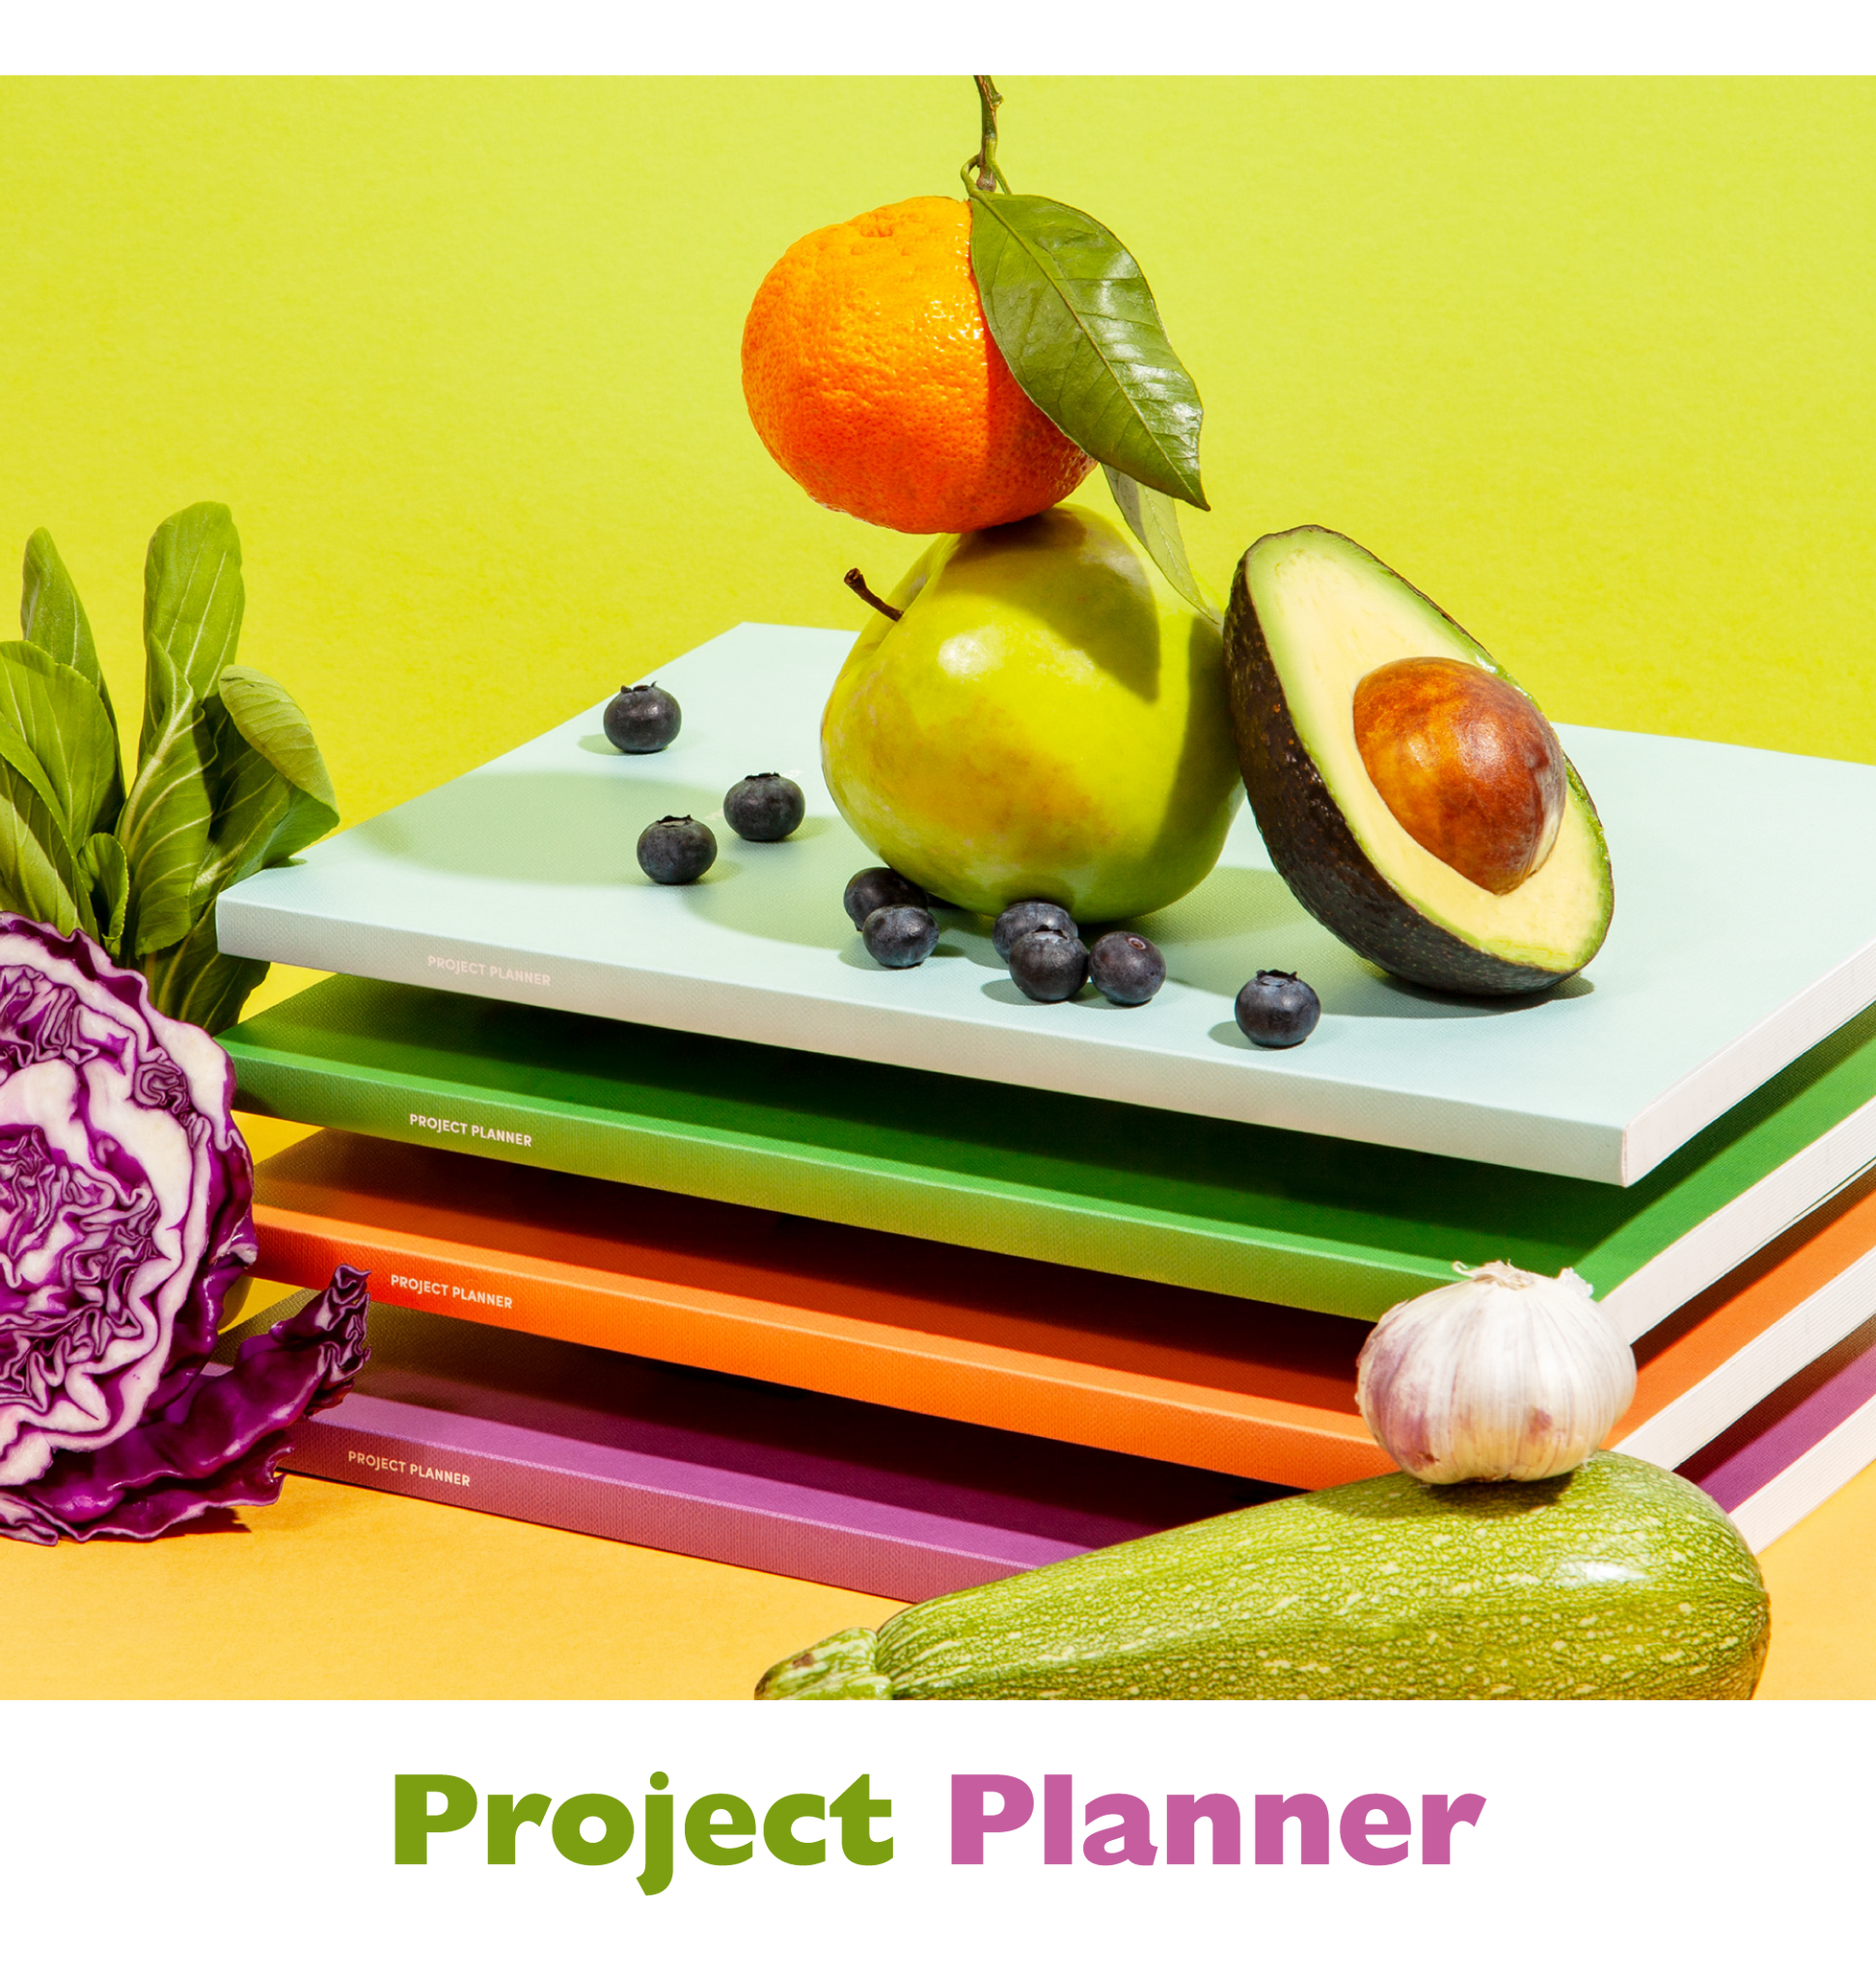 Planners stacked with fruit